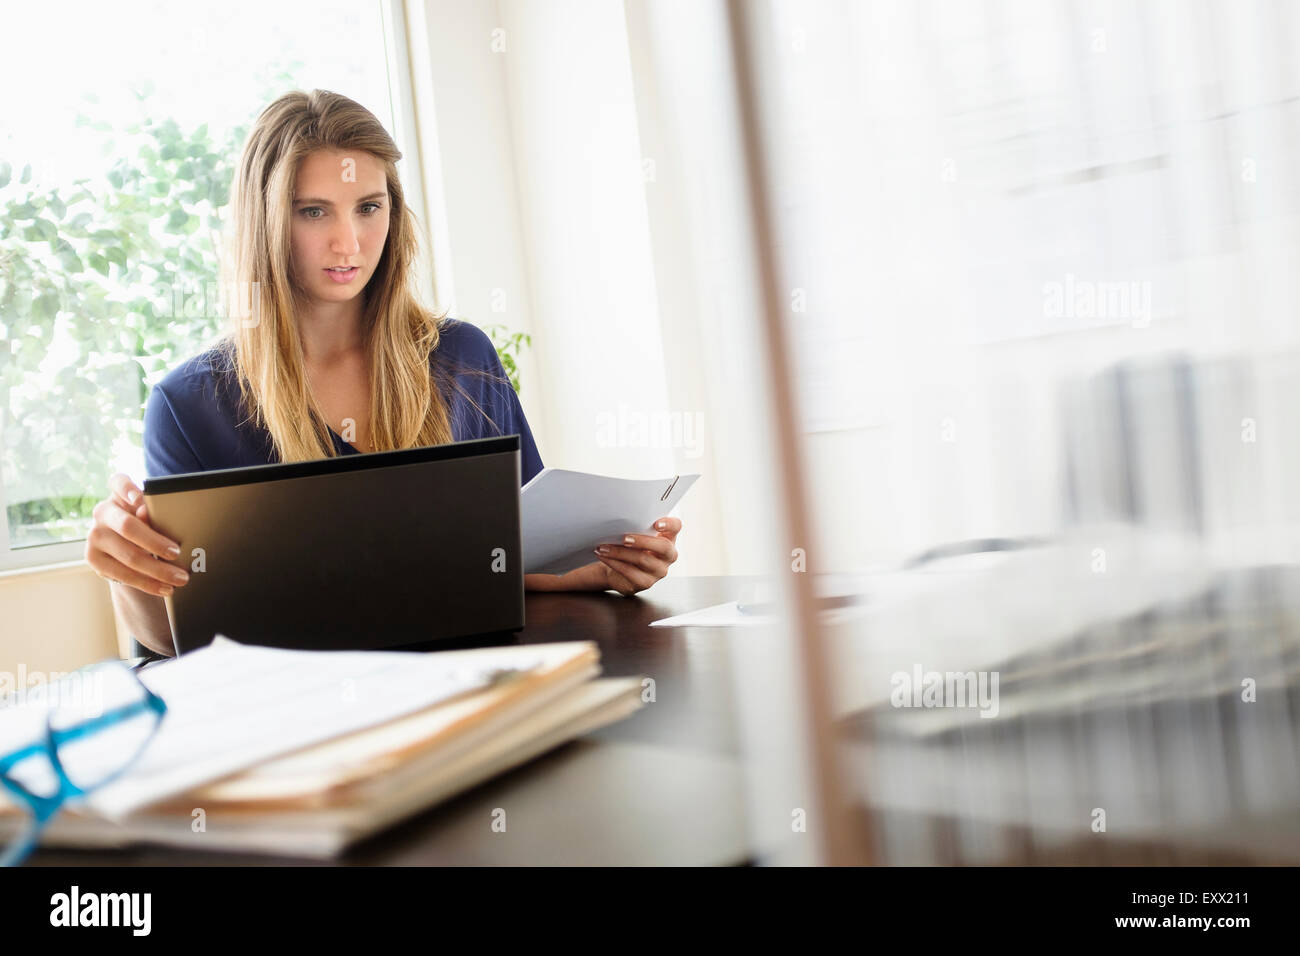 Woman working in office Photo Stock